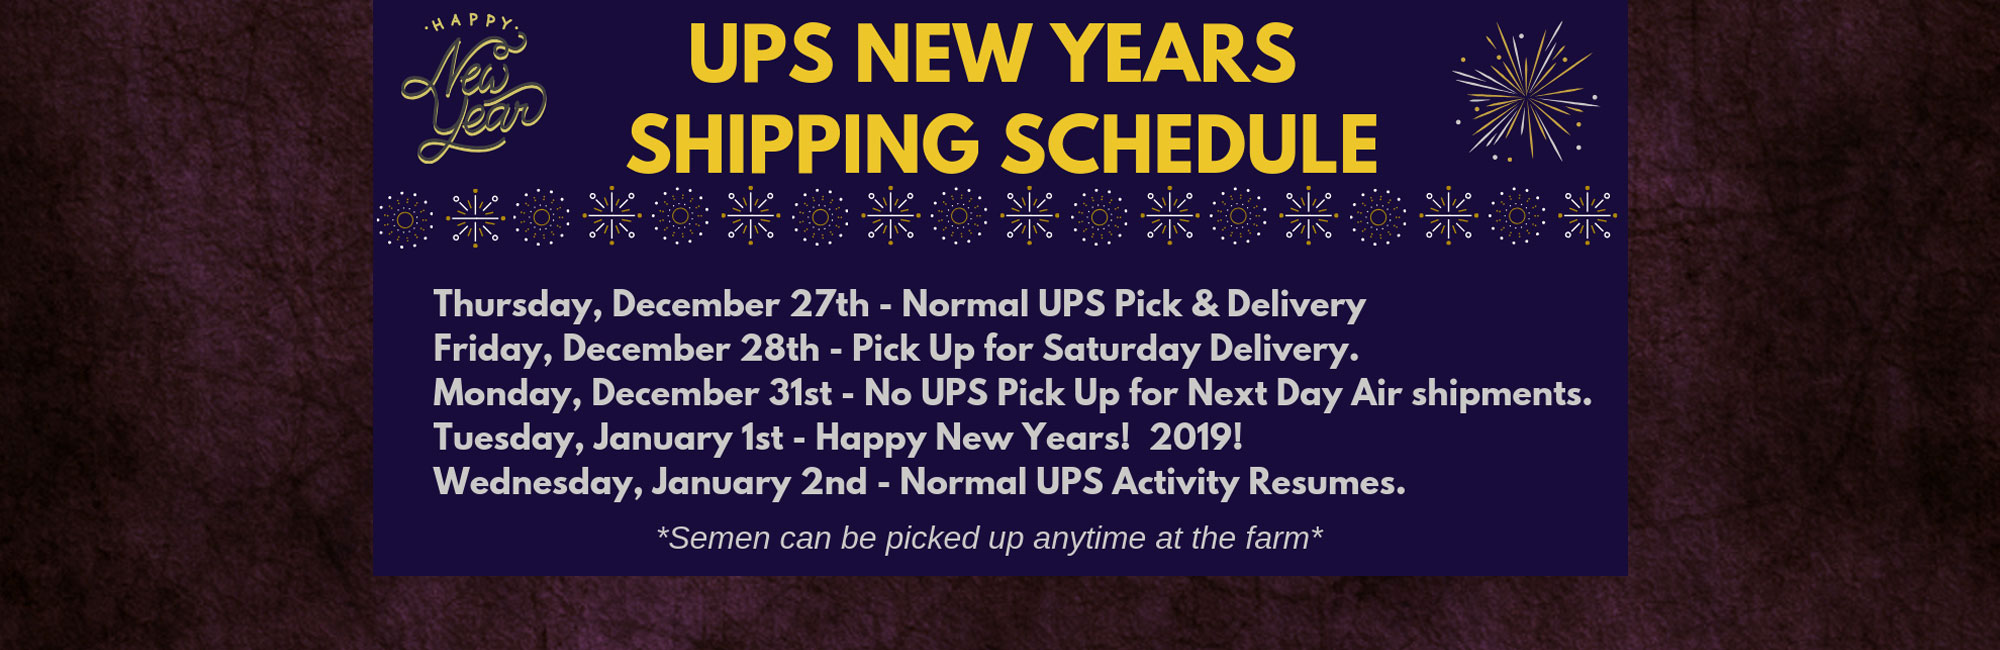 New Years Shipping Schedule